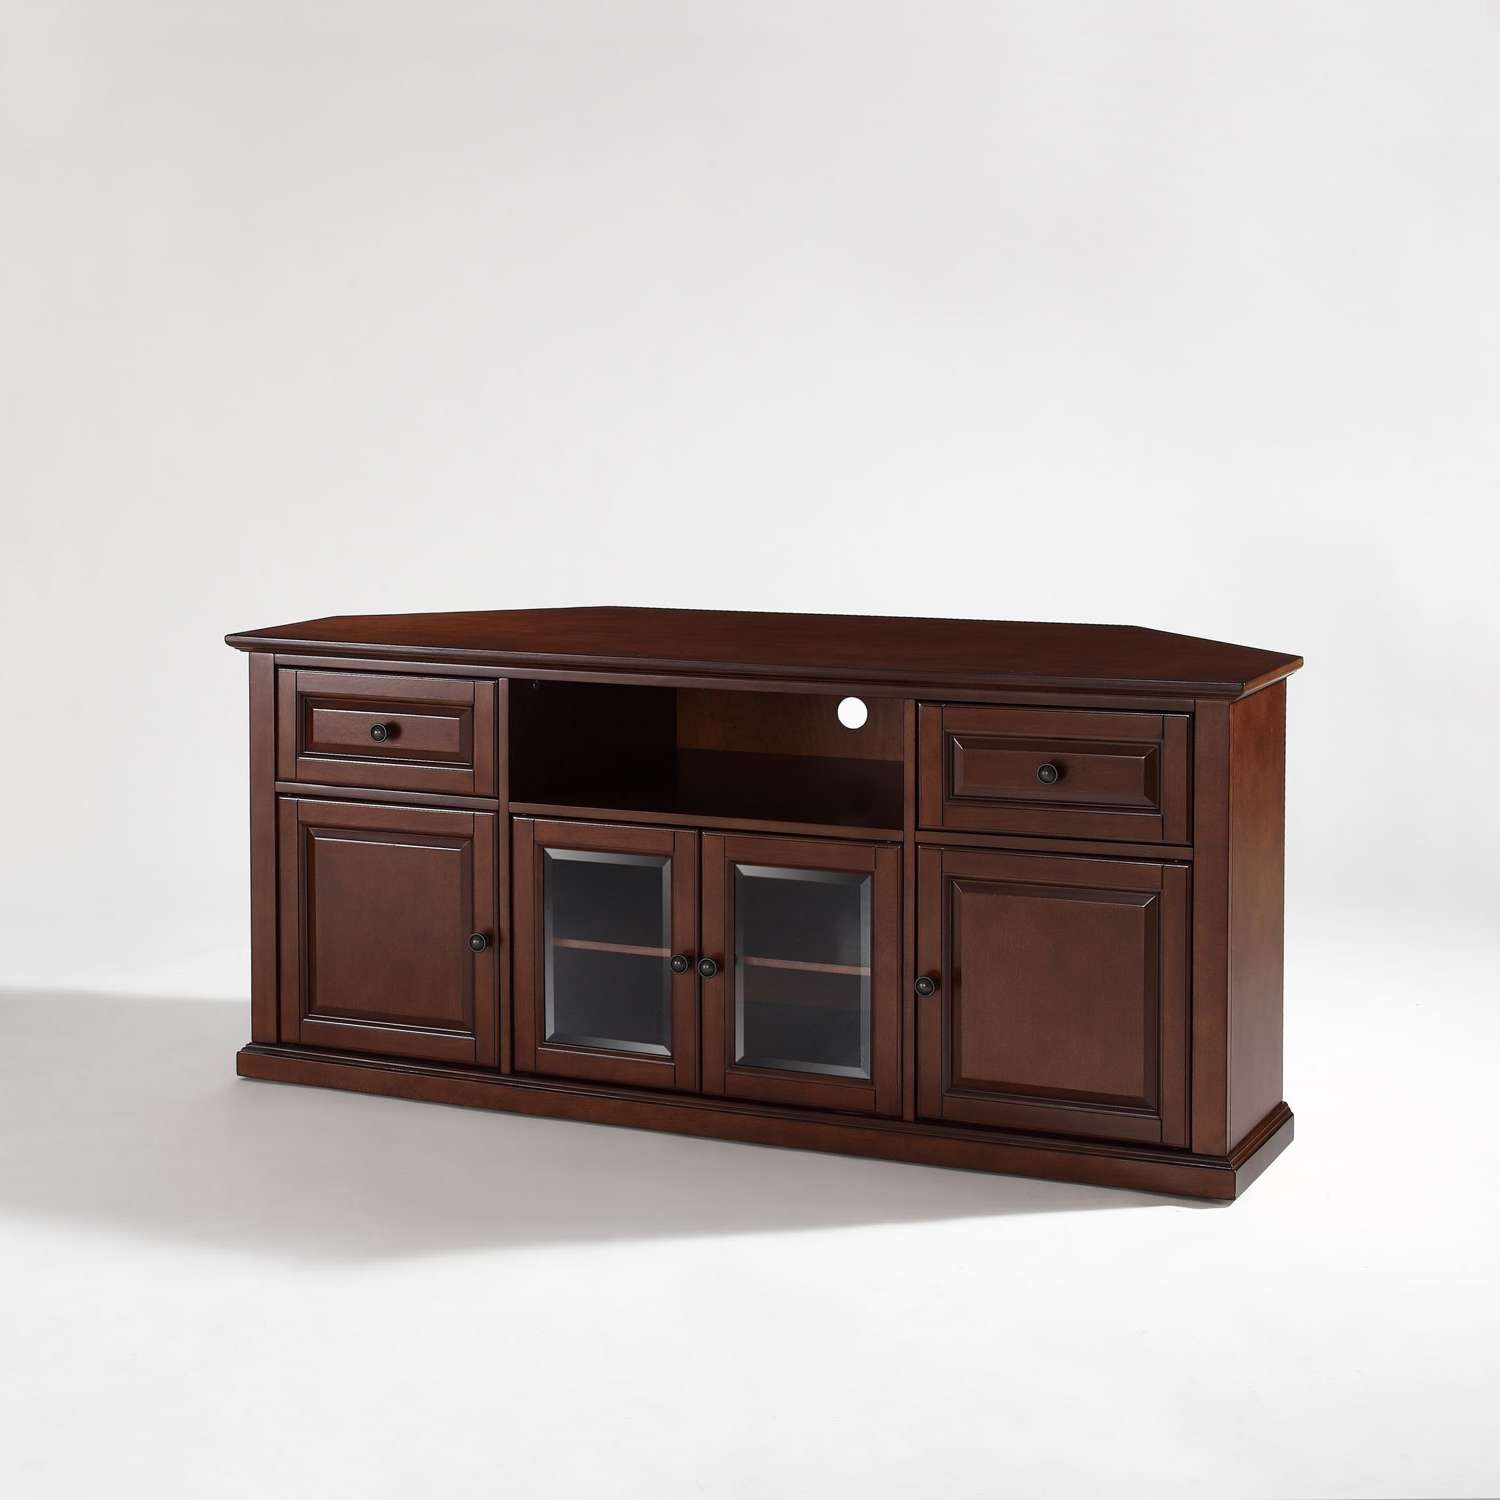 60 Inch Corner Tv Stand In Vintage Mahogany Crosley Furniture Inside Cherry Wood Tv Stands (View 12 of 15)